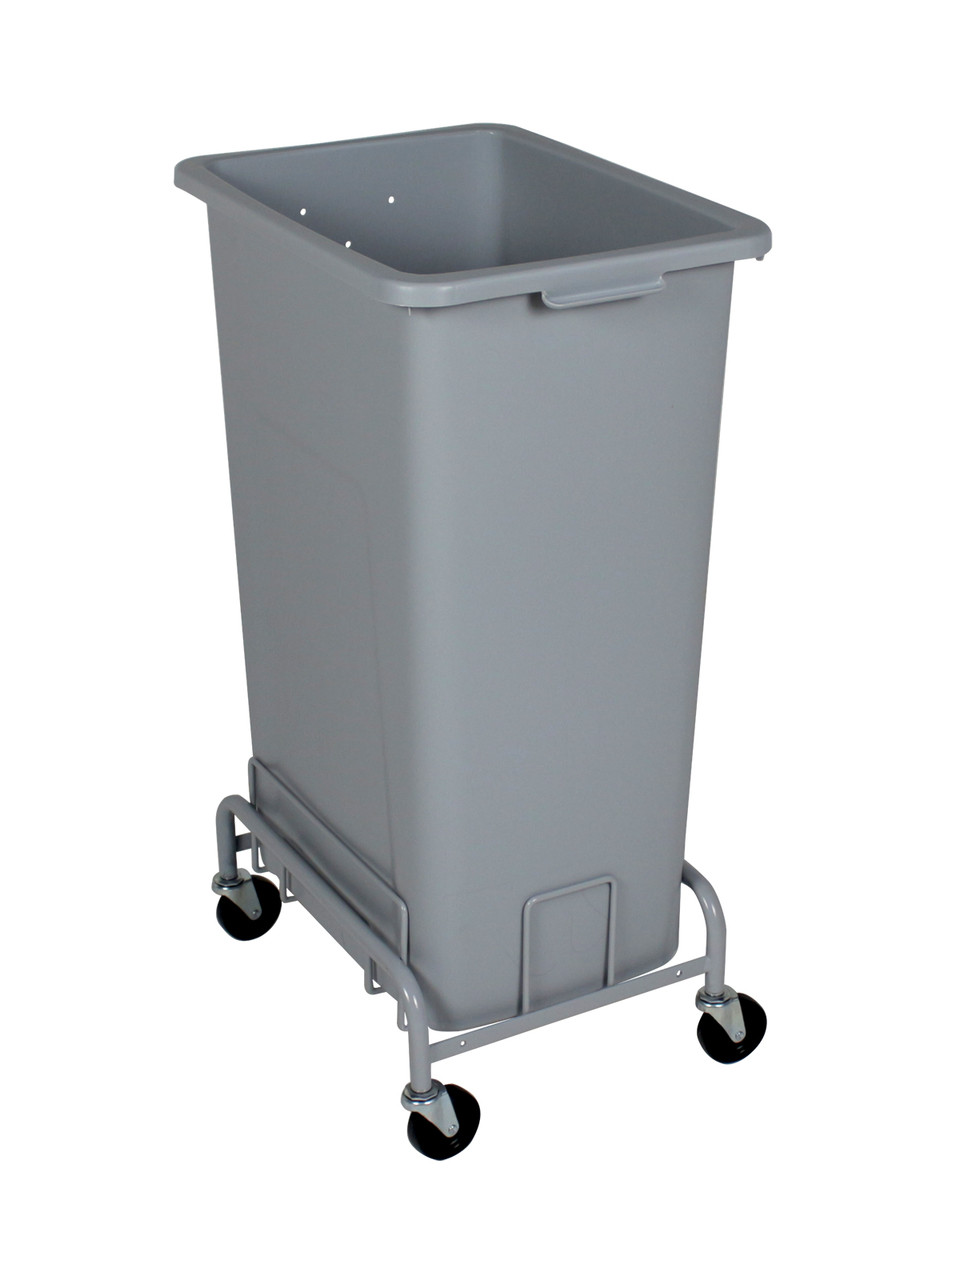 Laundry Trash Cans 24 Gallon Plastic Extra Large Trash Can With Wheels 4 Color Choices